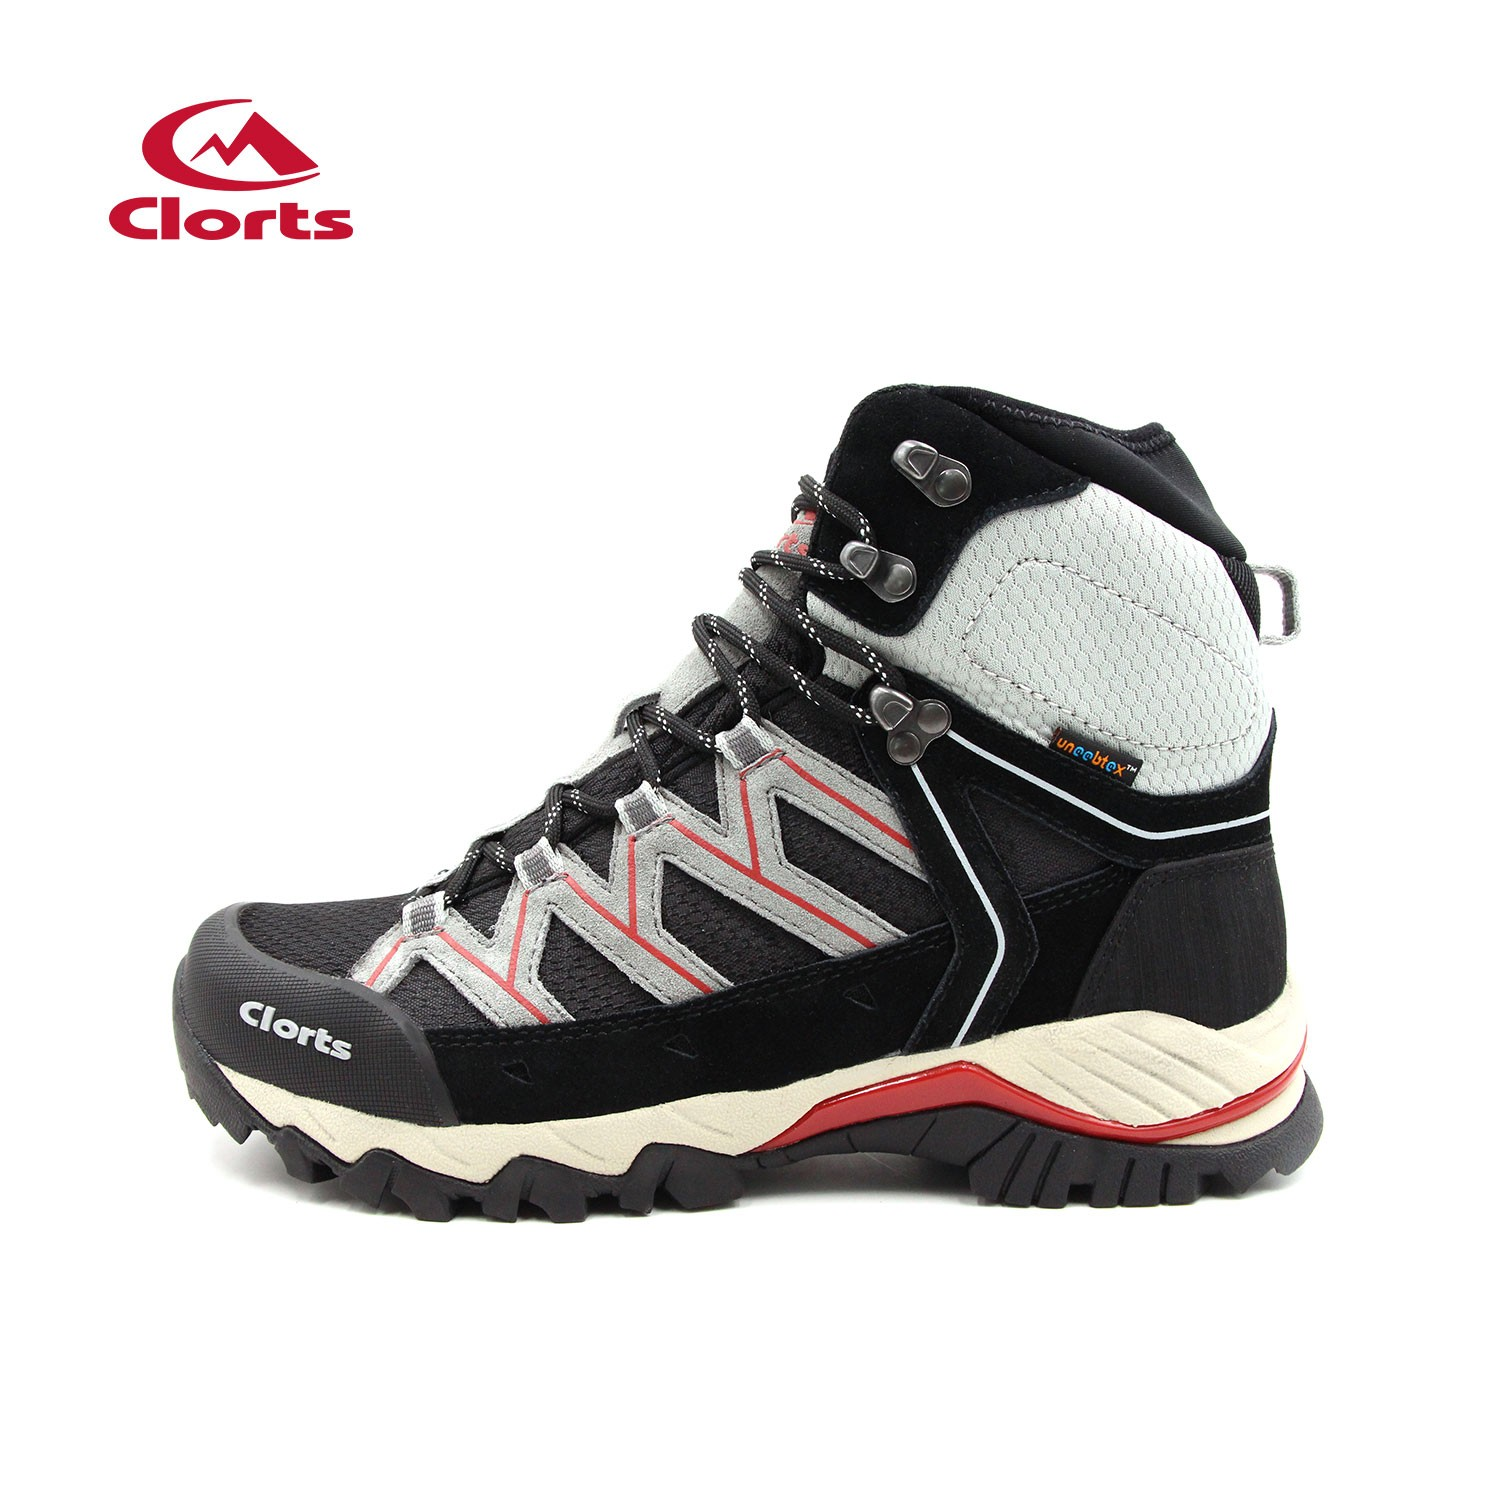 Clorts Mens Mountaineering Hiking Boots White Manufacturers, Clorts Mens Mountaineering Hiking Boots White Factory, Supply Clorts Mens Mountaineering Hiking Boots White